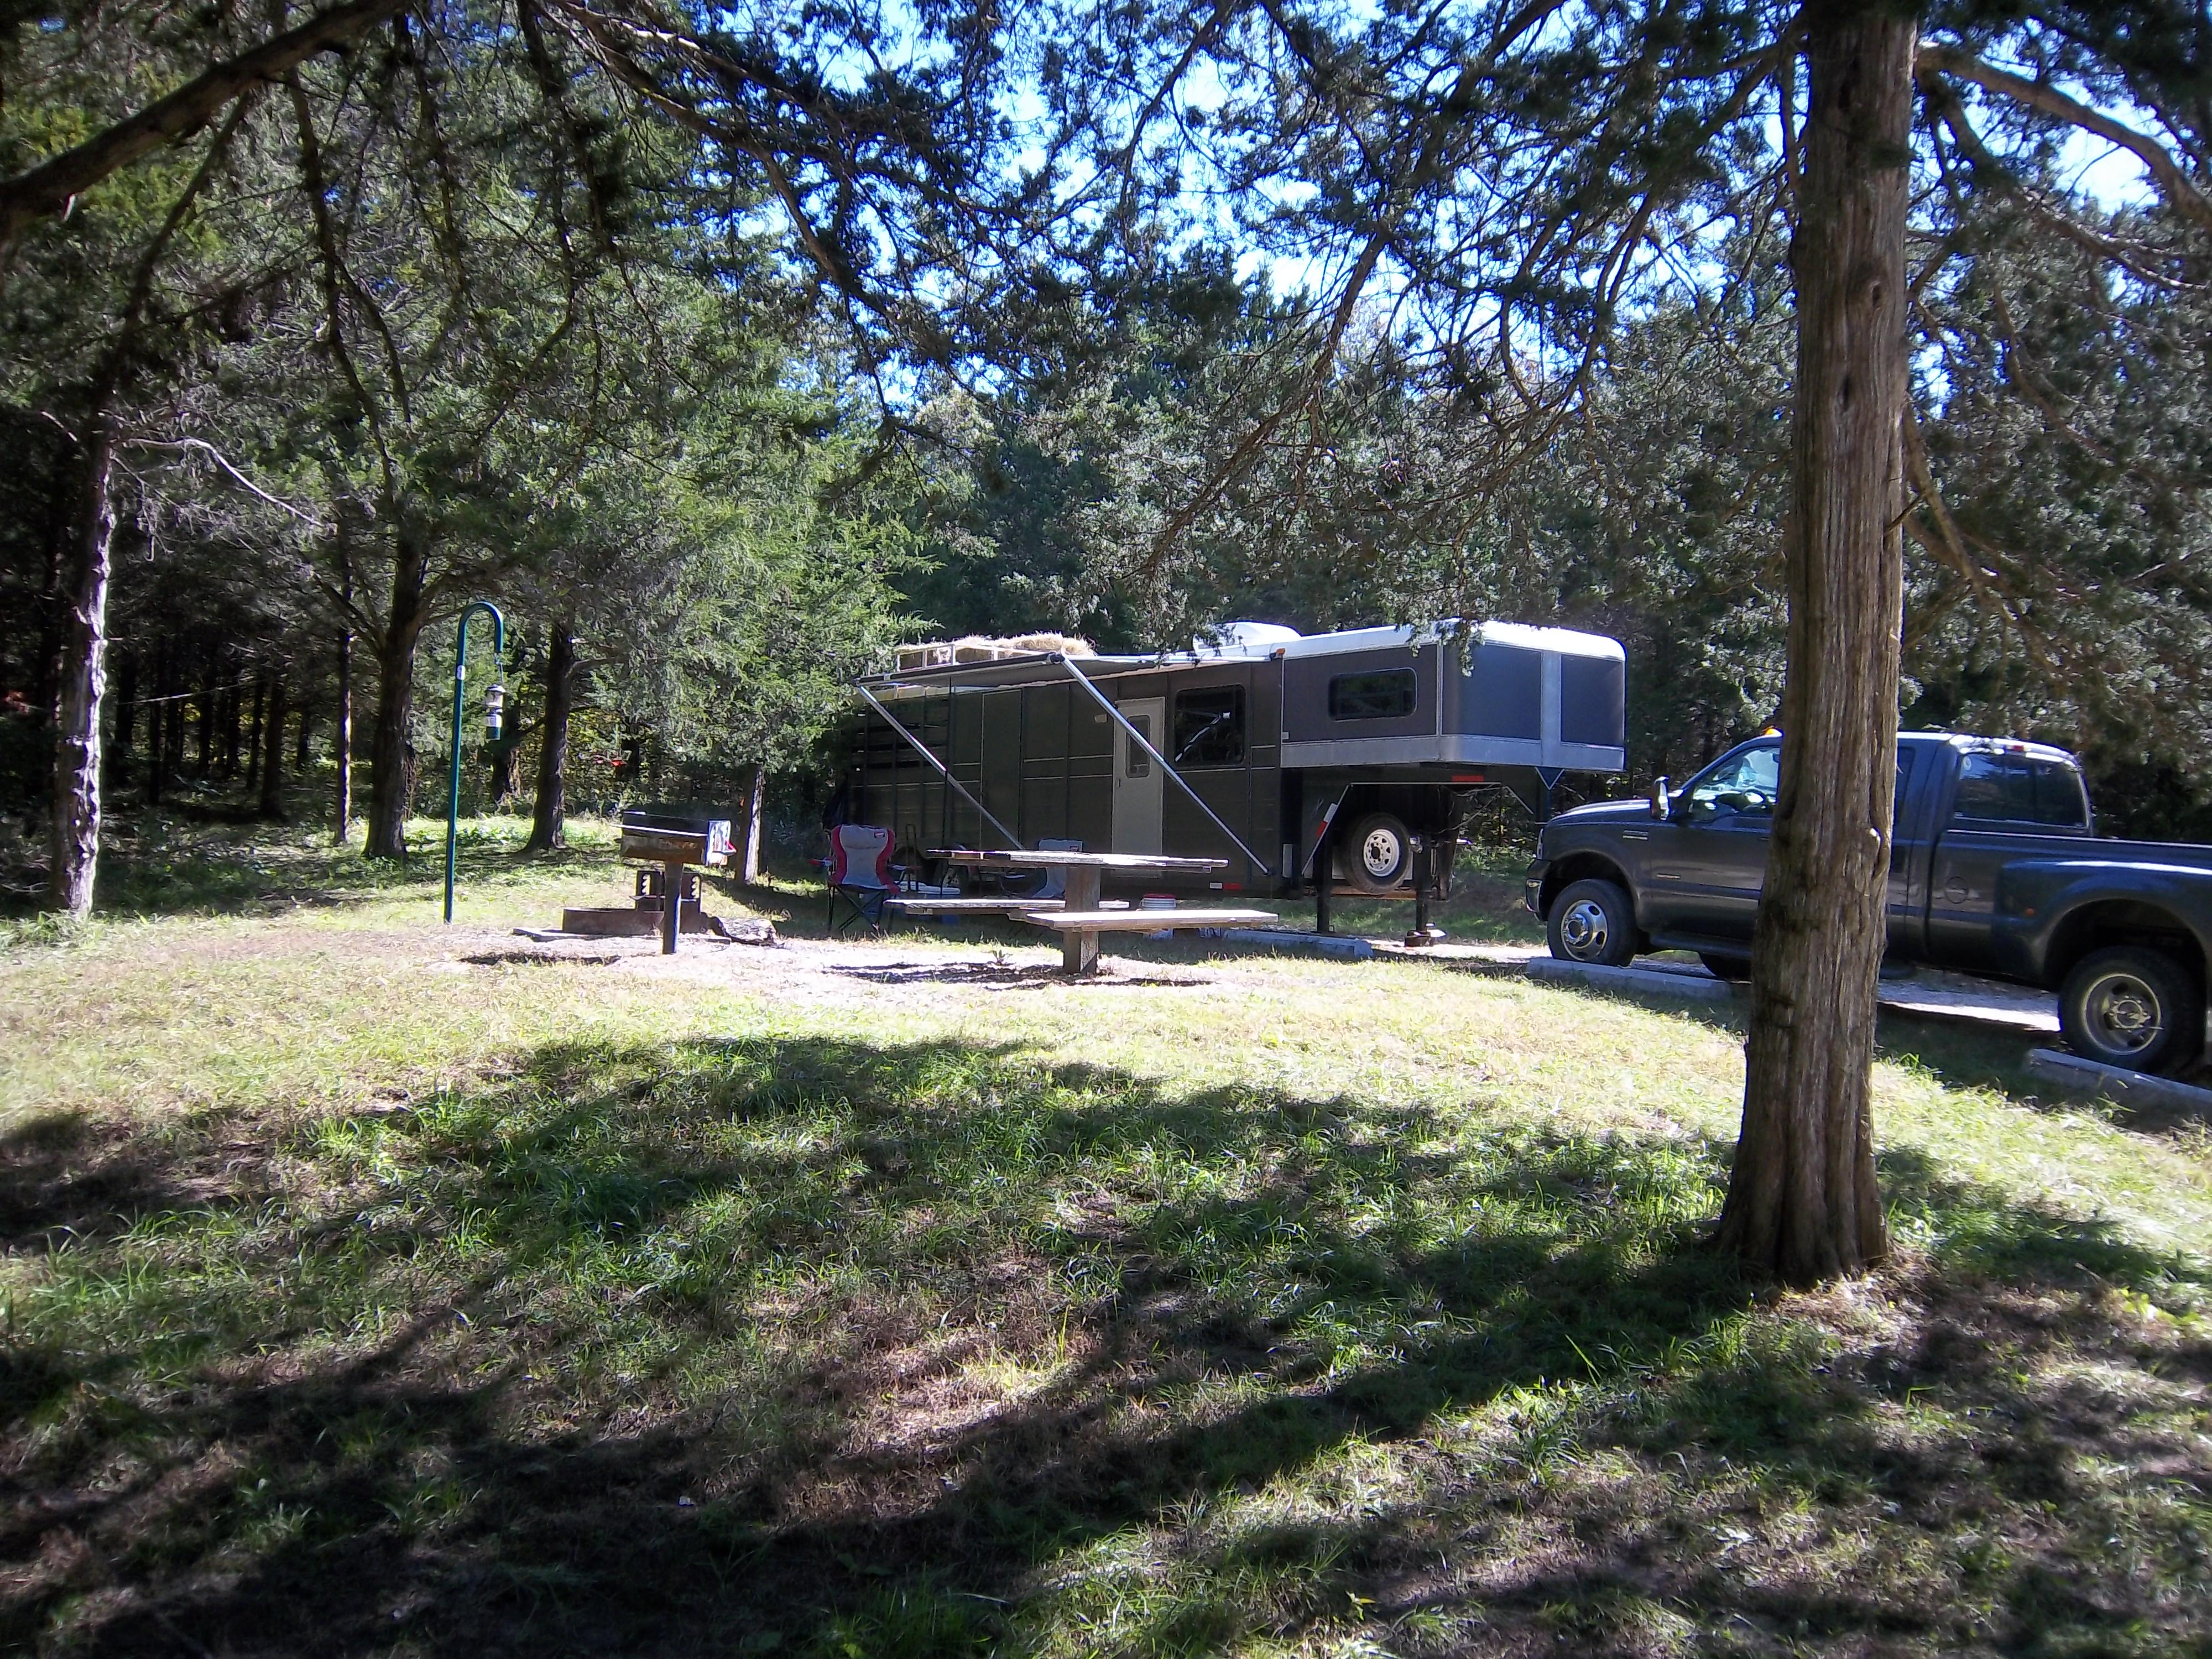 Campground Site with Horse trailer